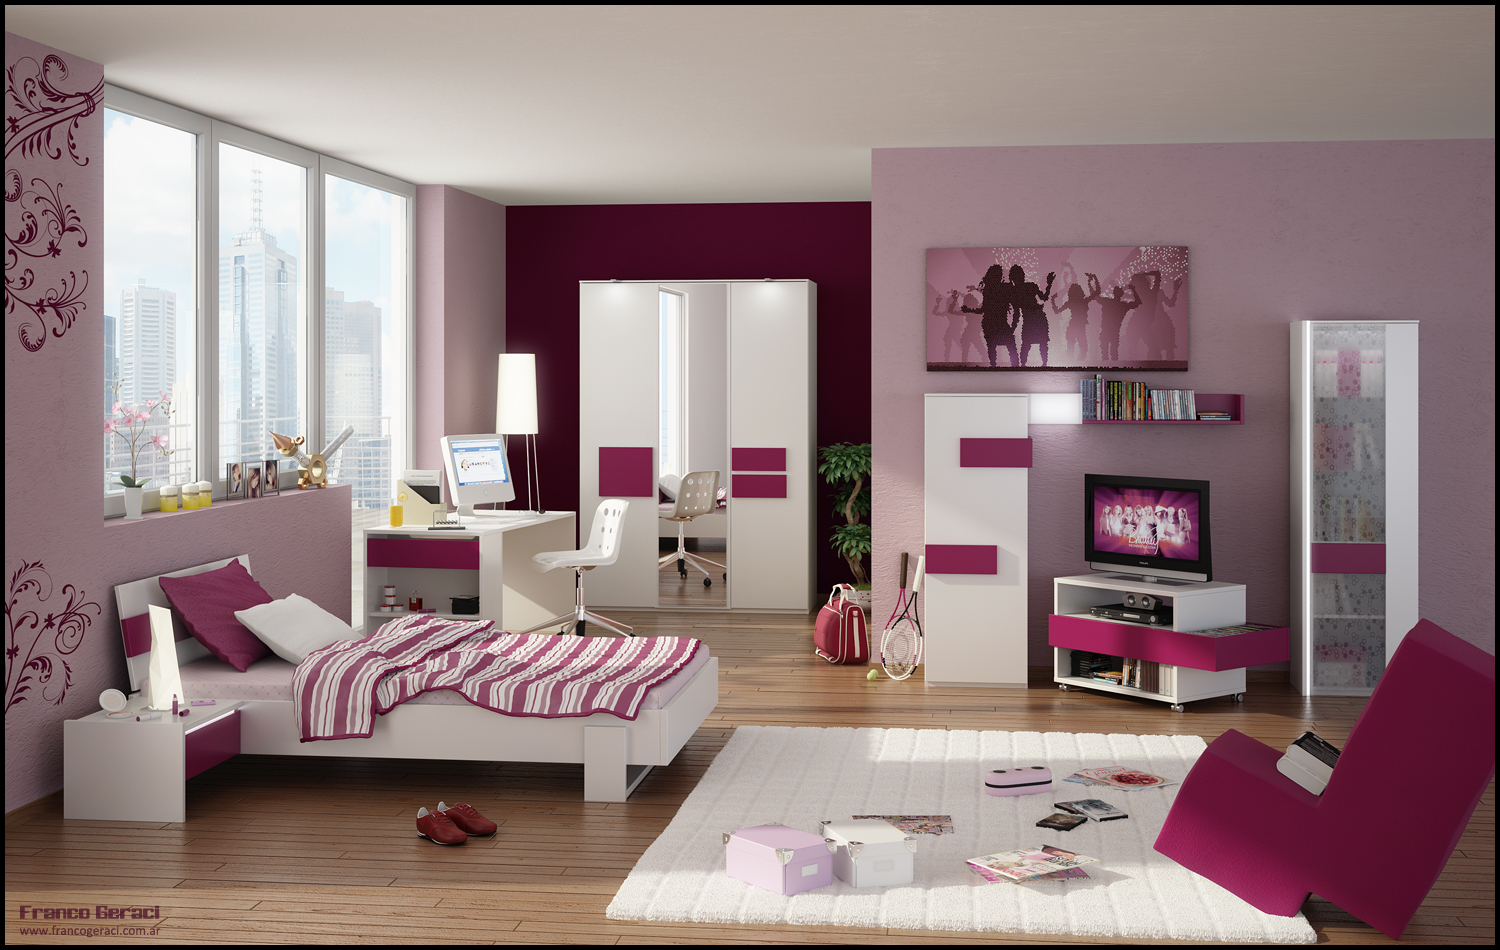 Best interior design feminine home designer for The ideas for teen bedroom decor